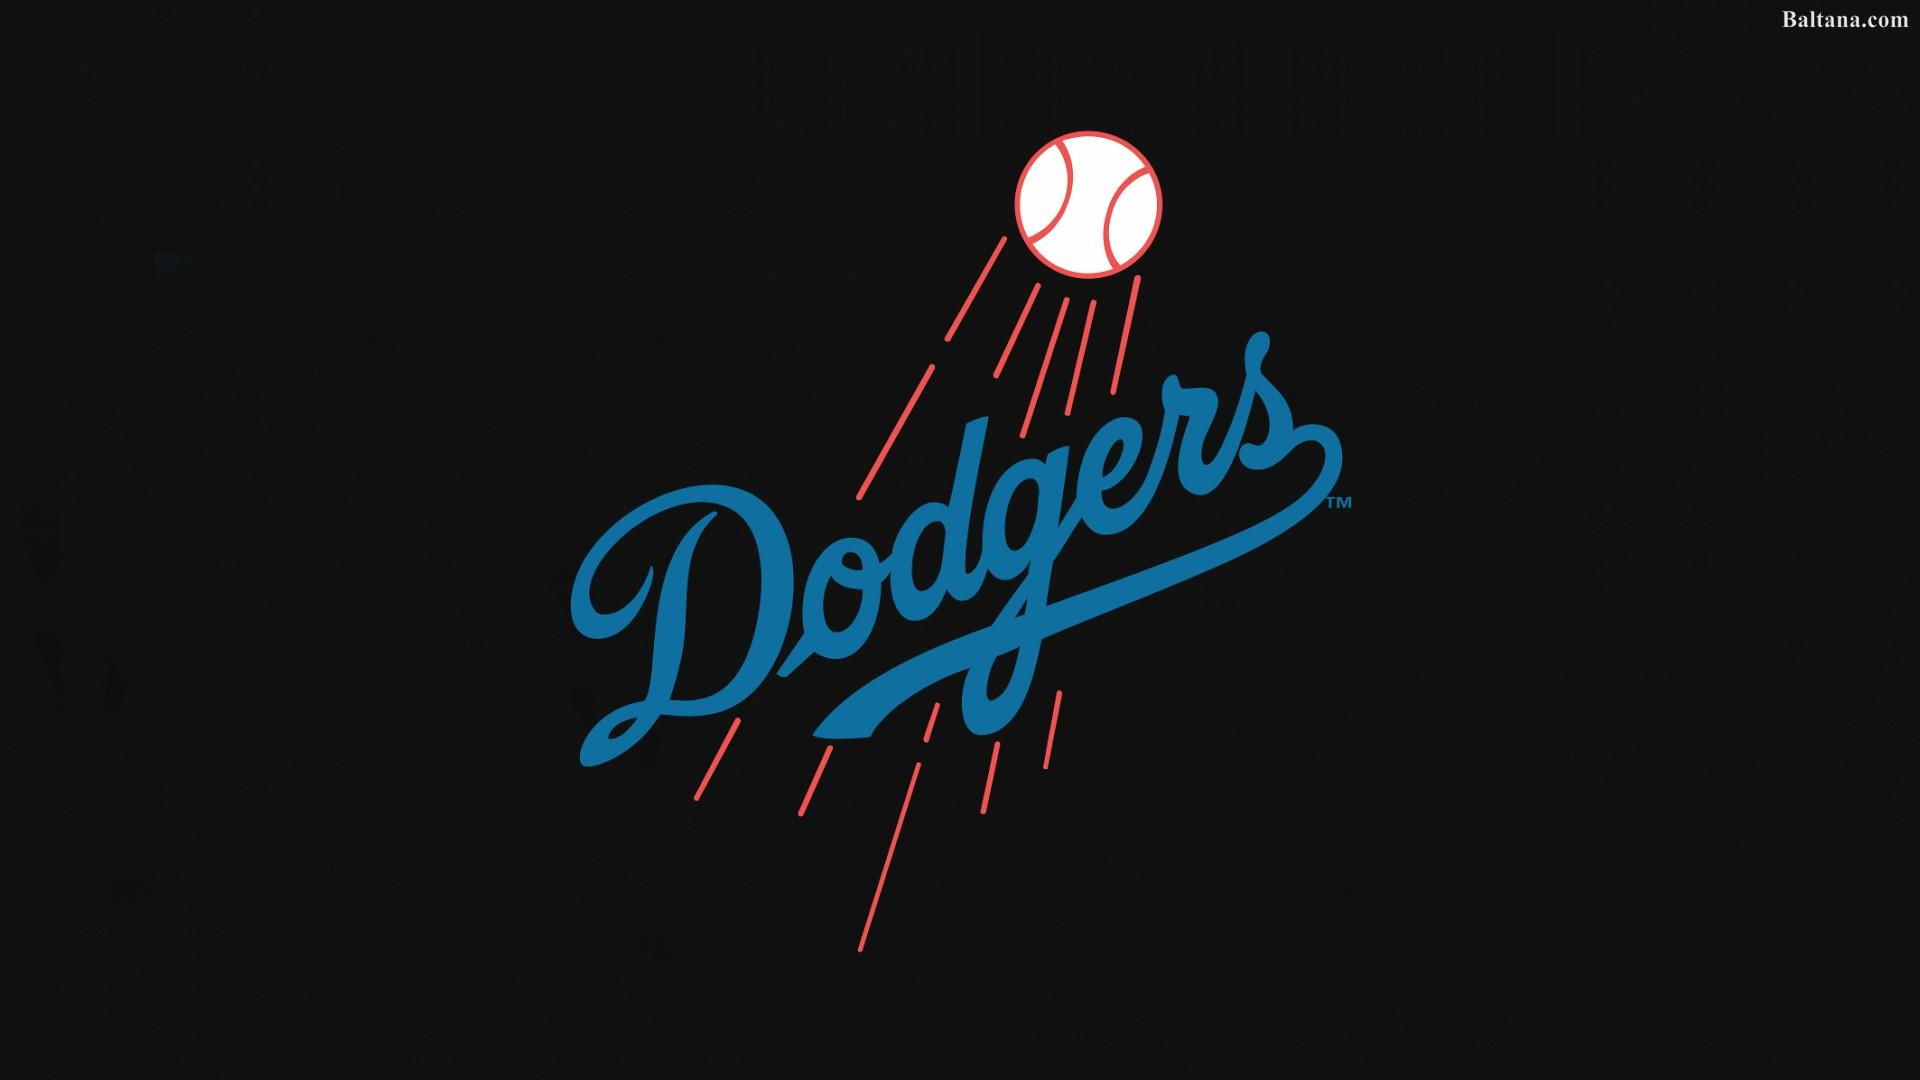 Los Angeles Dodgers 2019 Wallpapers - Wallpaper Cave